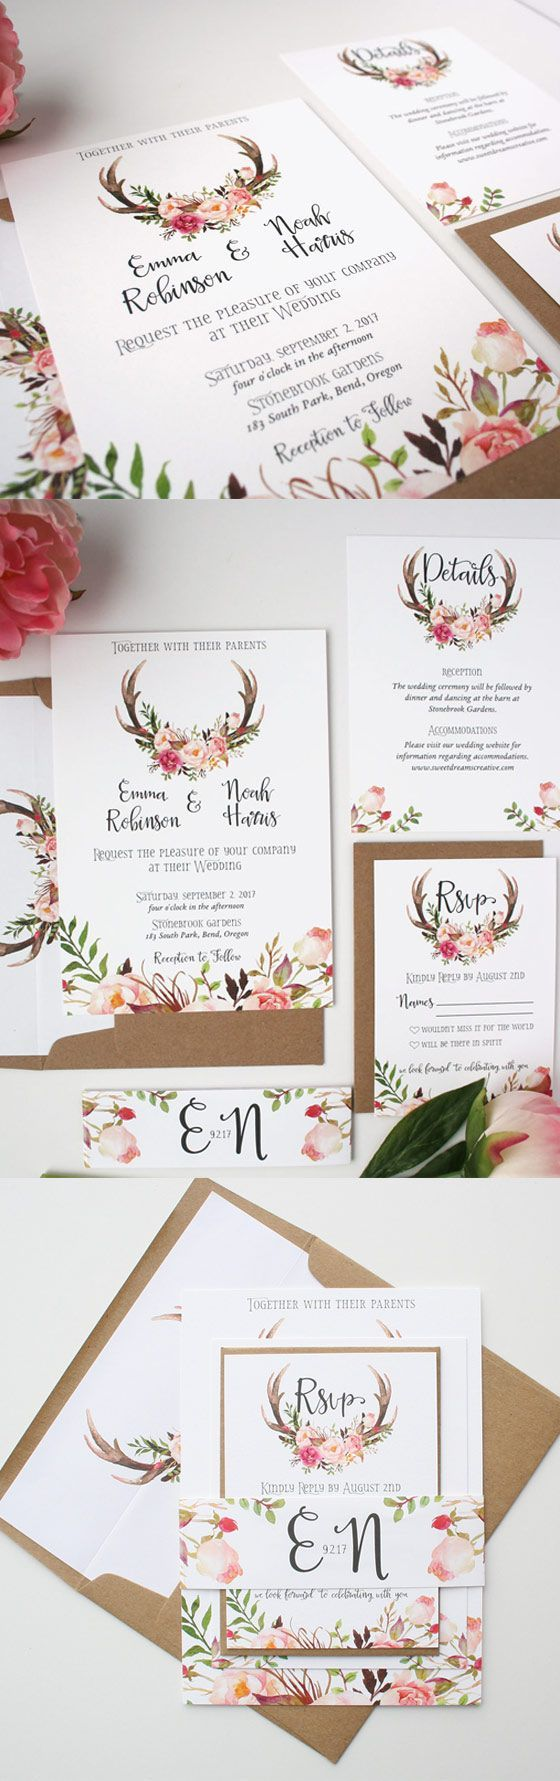 second wedding invitations wording%0A Antler wedding invitations for a rustic wedding